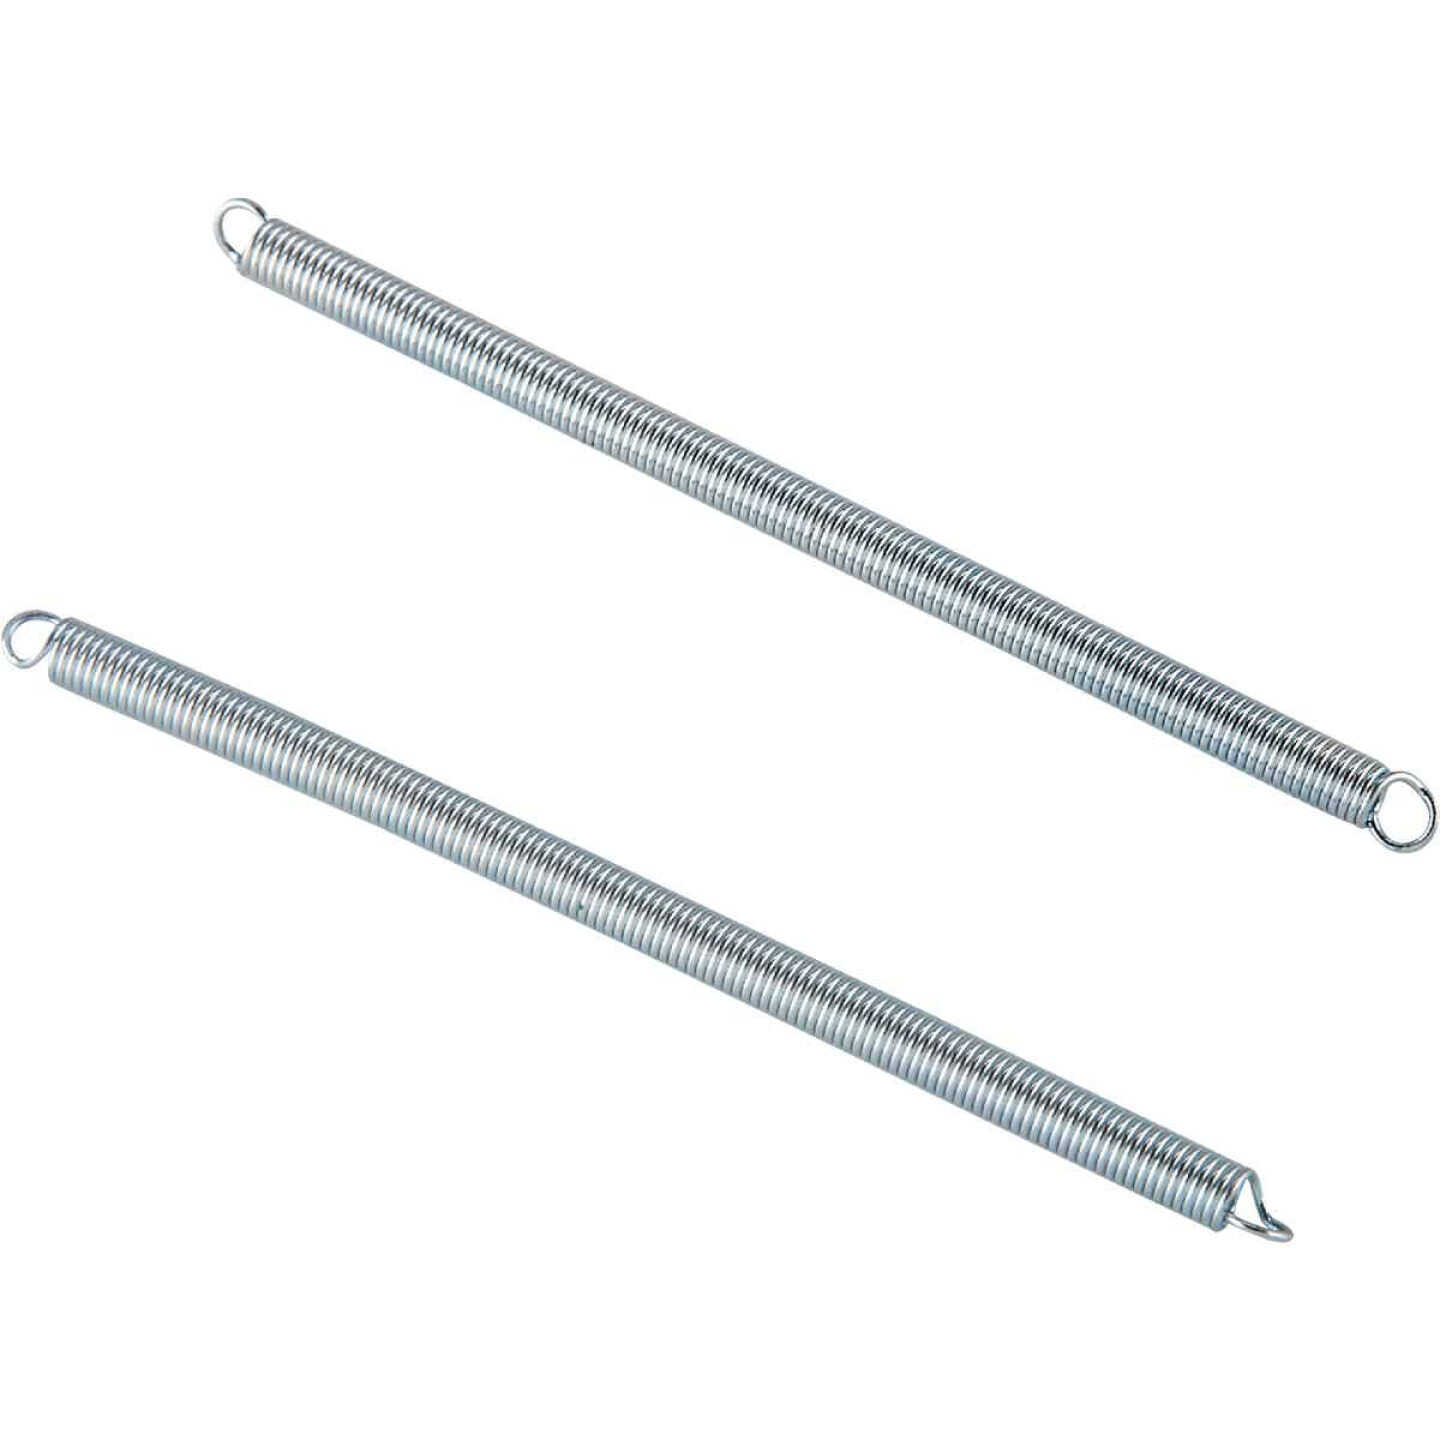 Century Spring 9 In. x 7/8 In. Extension Spring (1 Count) Image 1